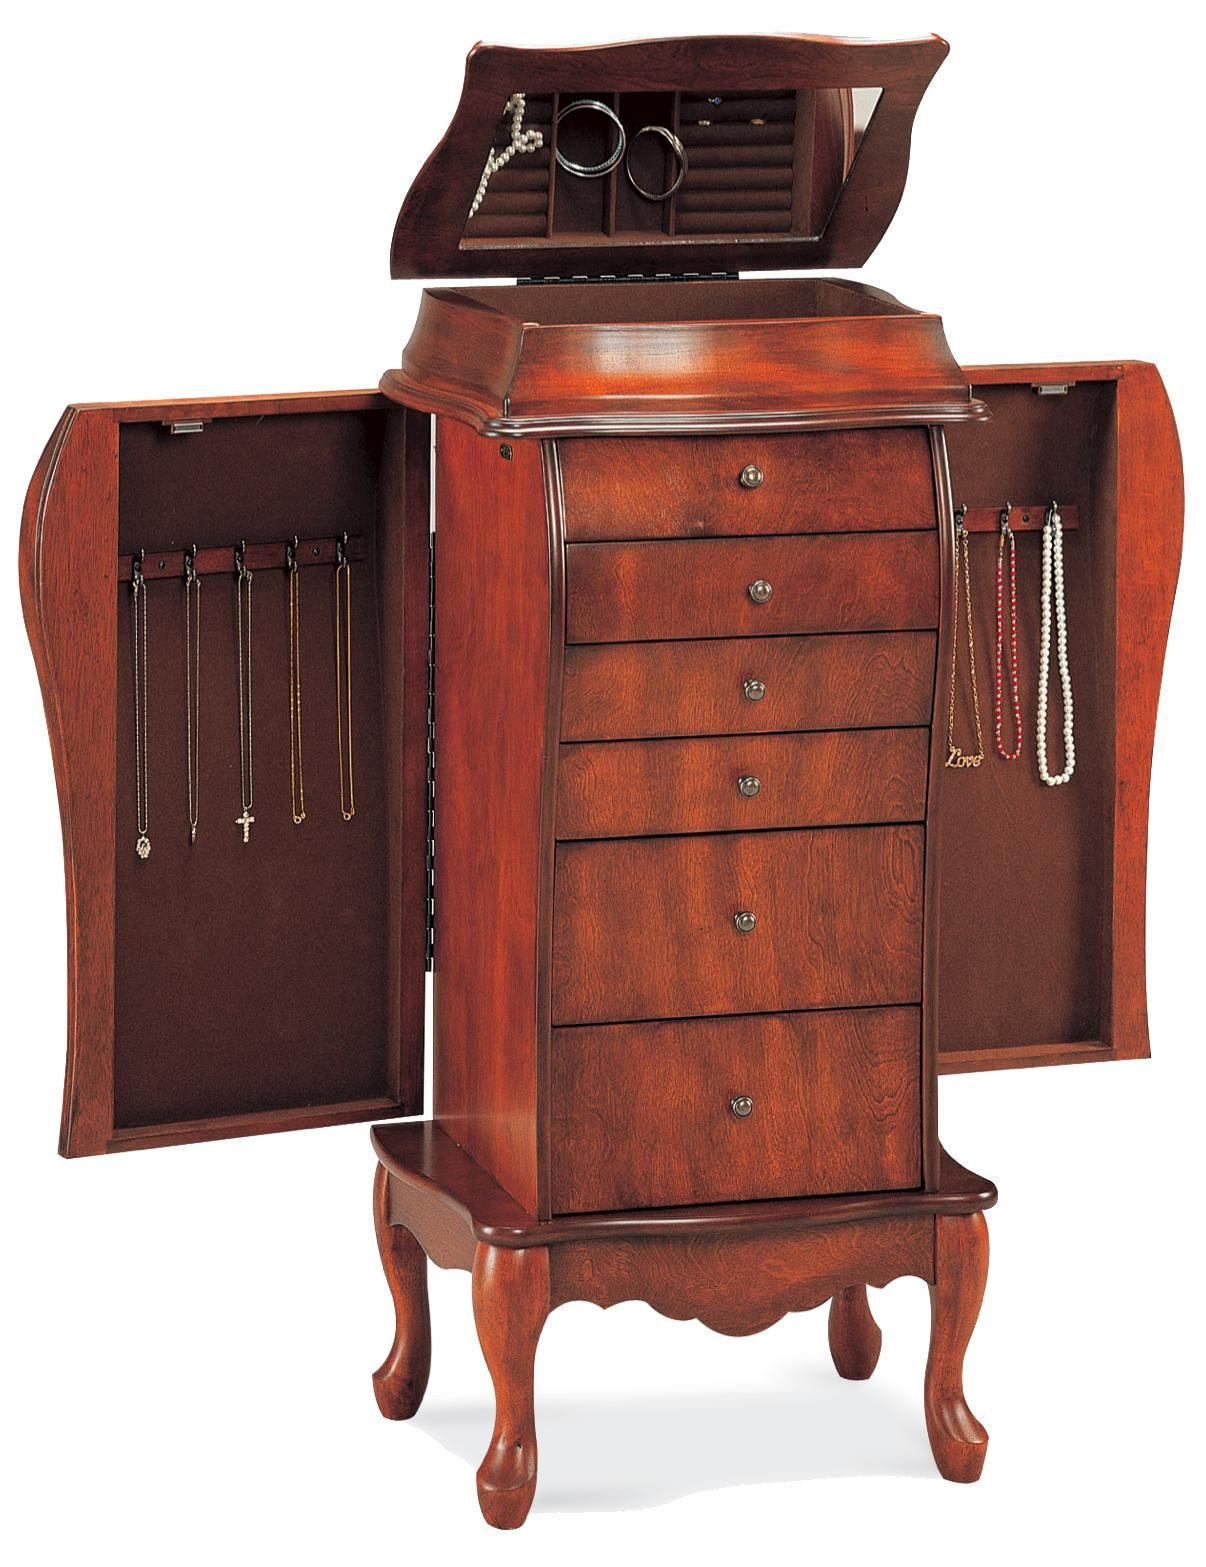 Beautifully Crafted Antique Cherry Jewelry Armoire by Coaster www